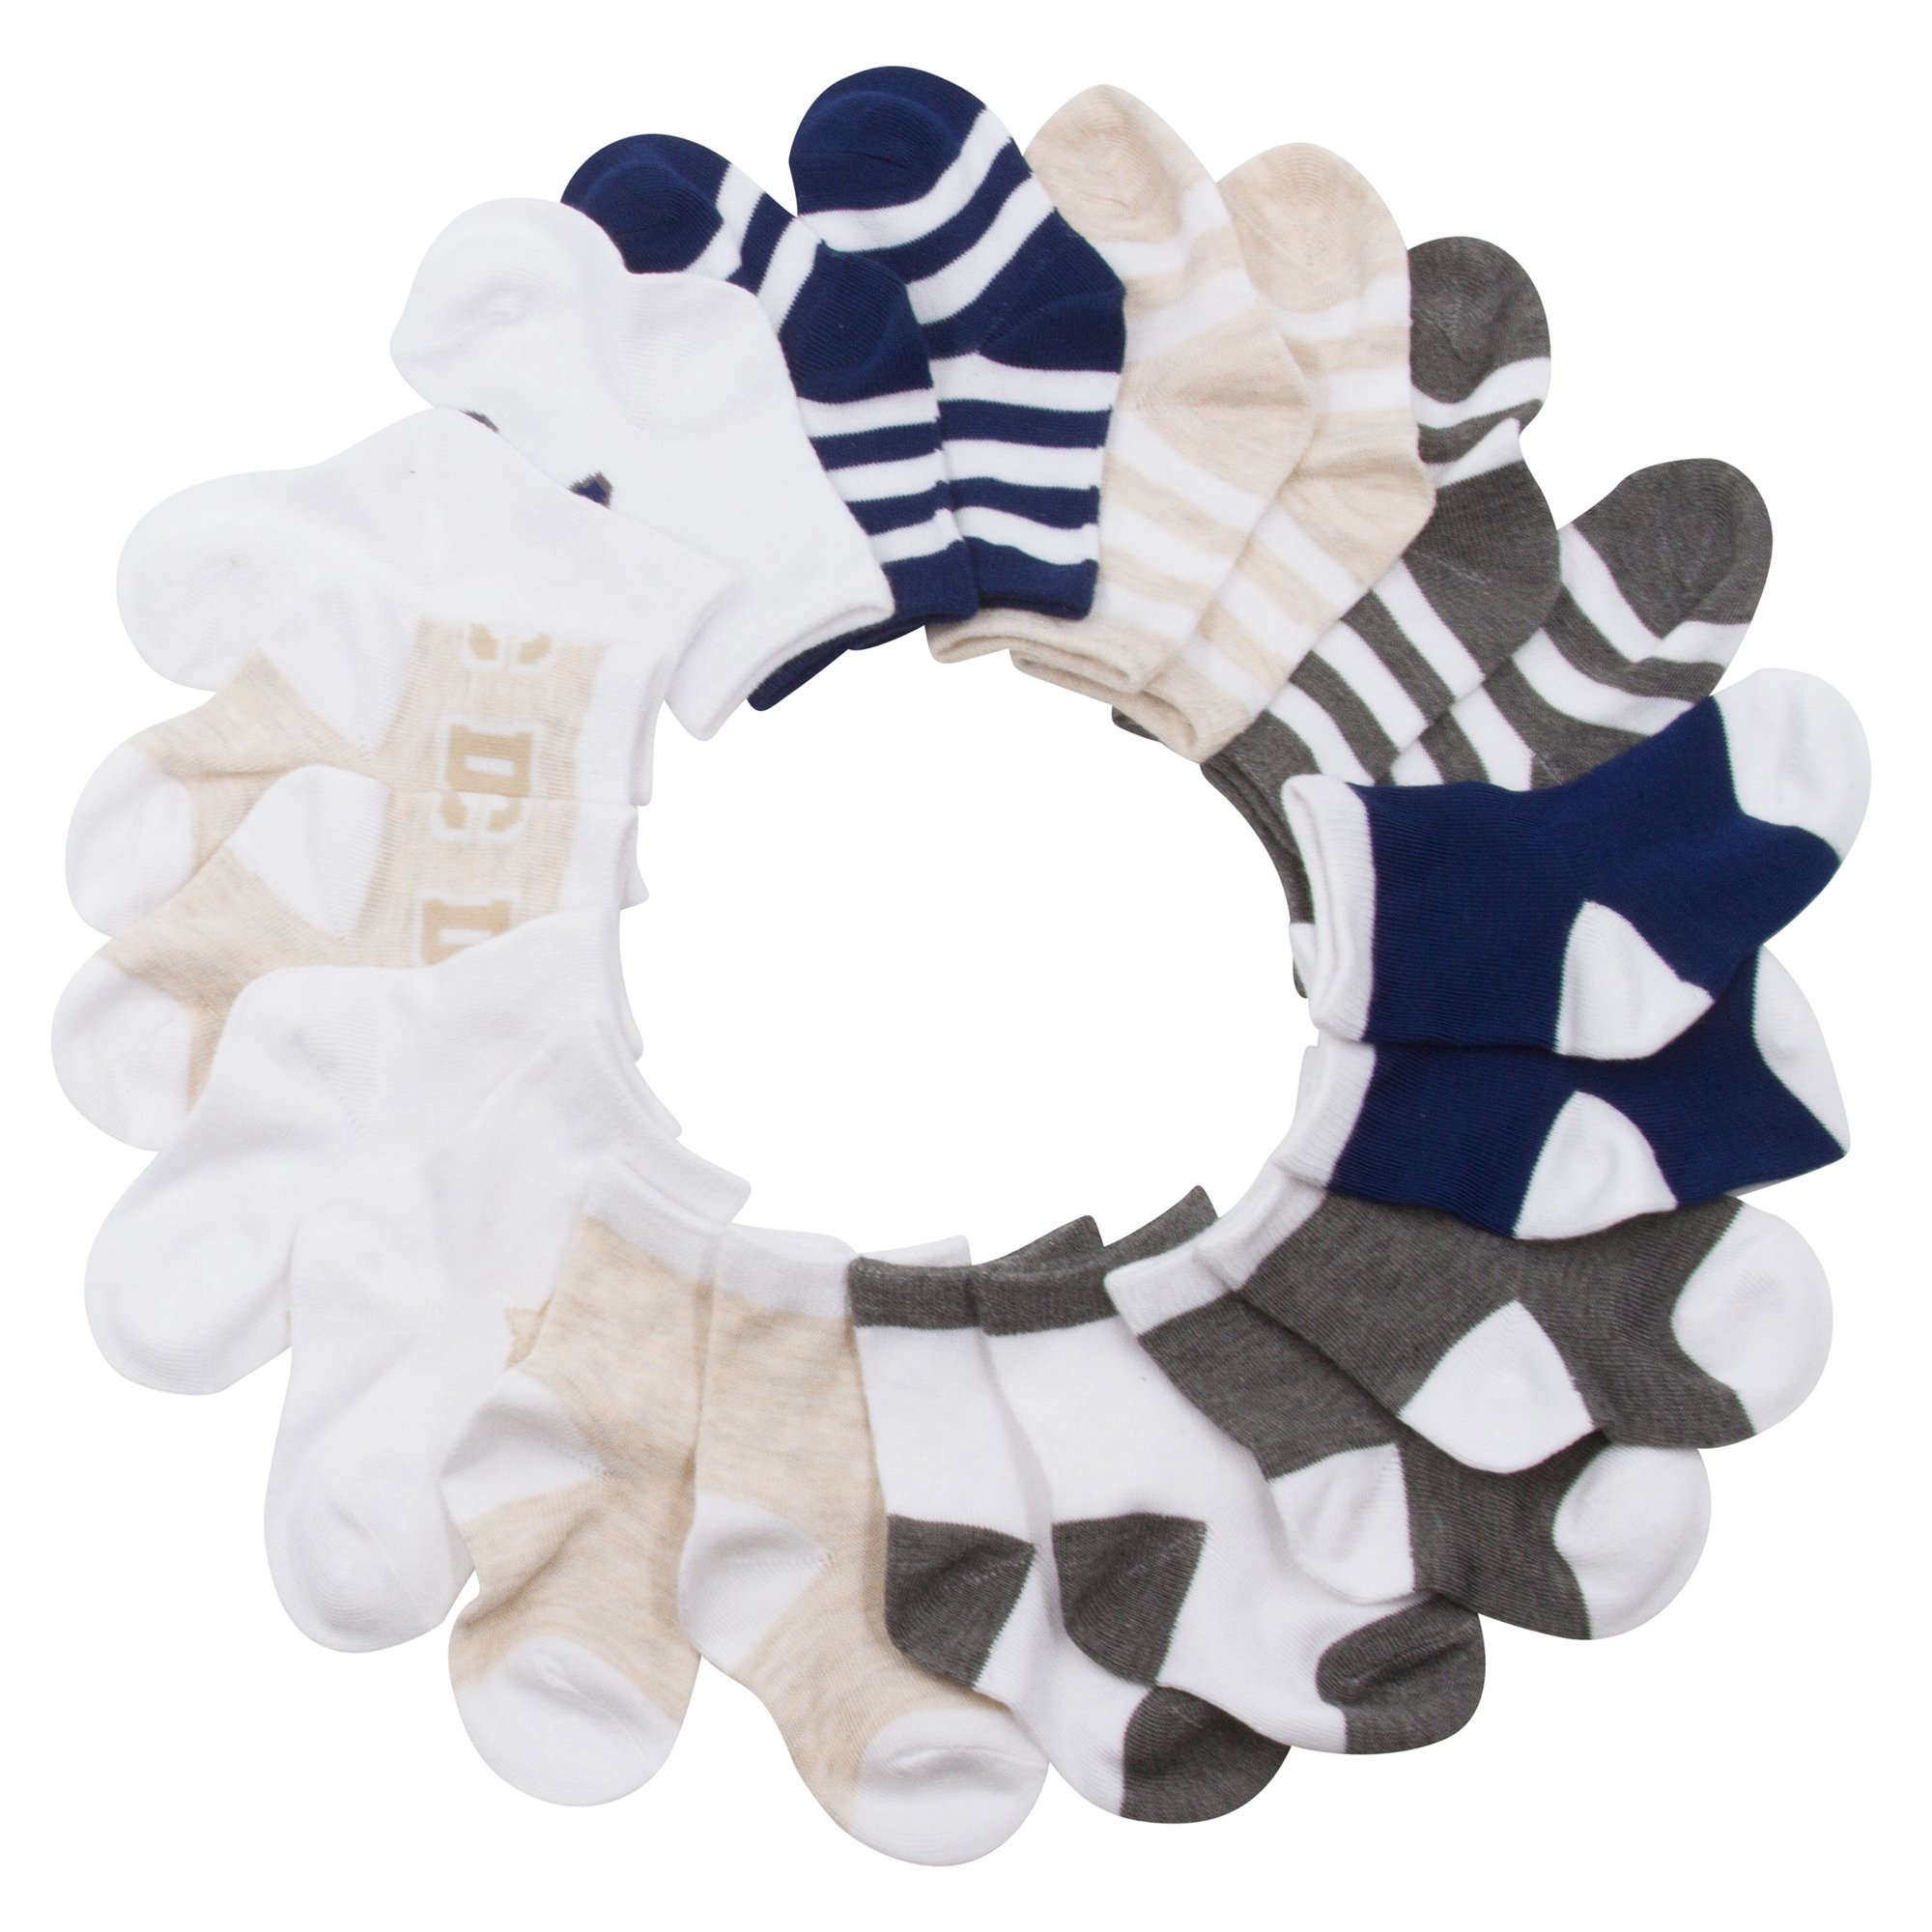 BARE HUGS Infant Boys 10 Pk All Weather Multicolored Low Cut Socks Light Stripes and Stars 6-12 Mos